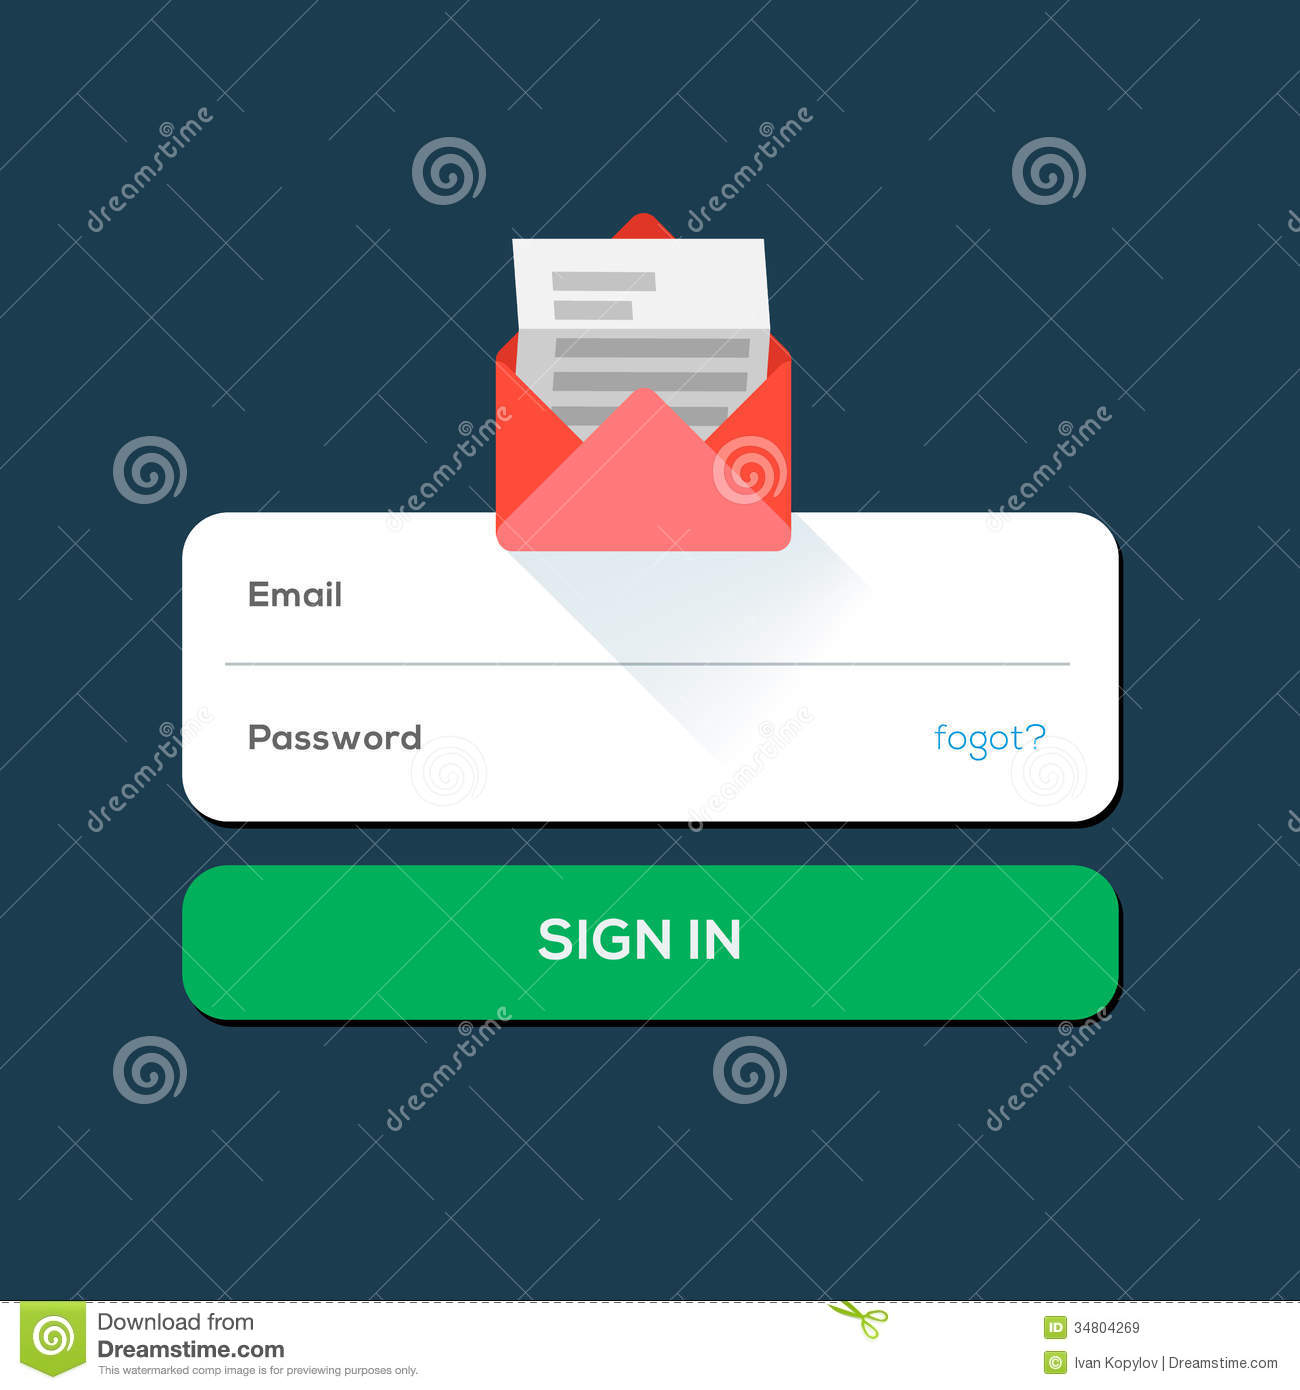 Envelope e-mail Flat icon, with log in button